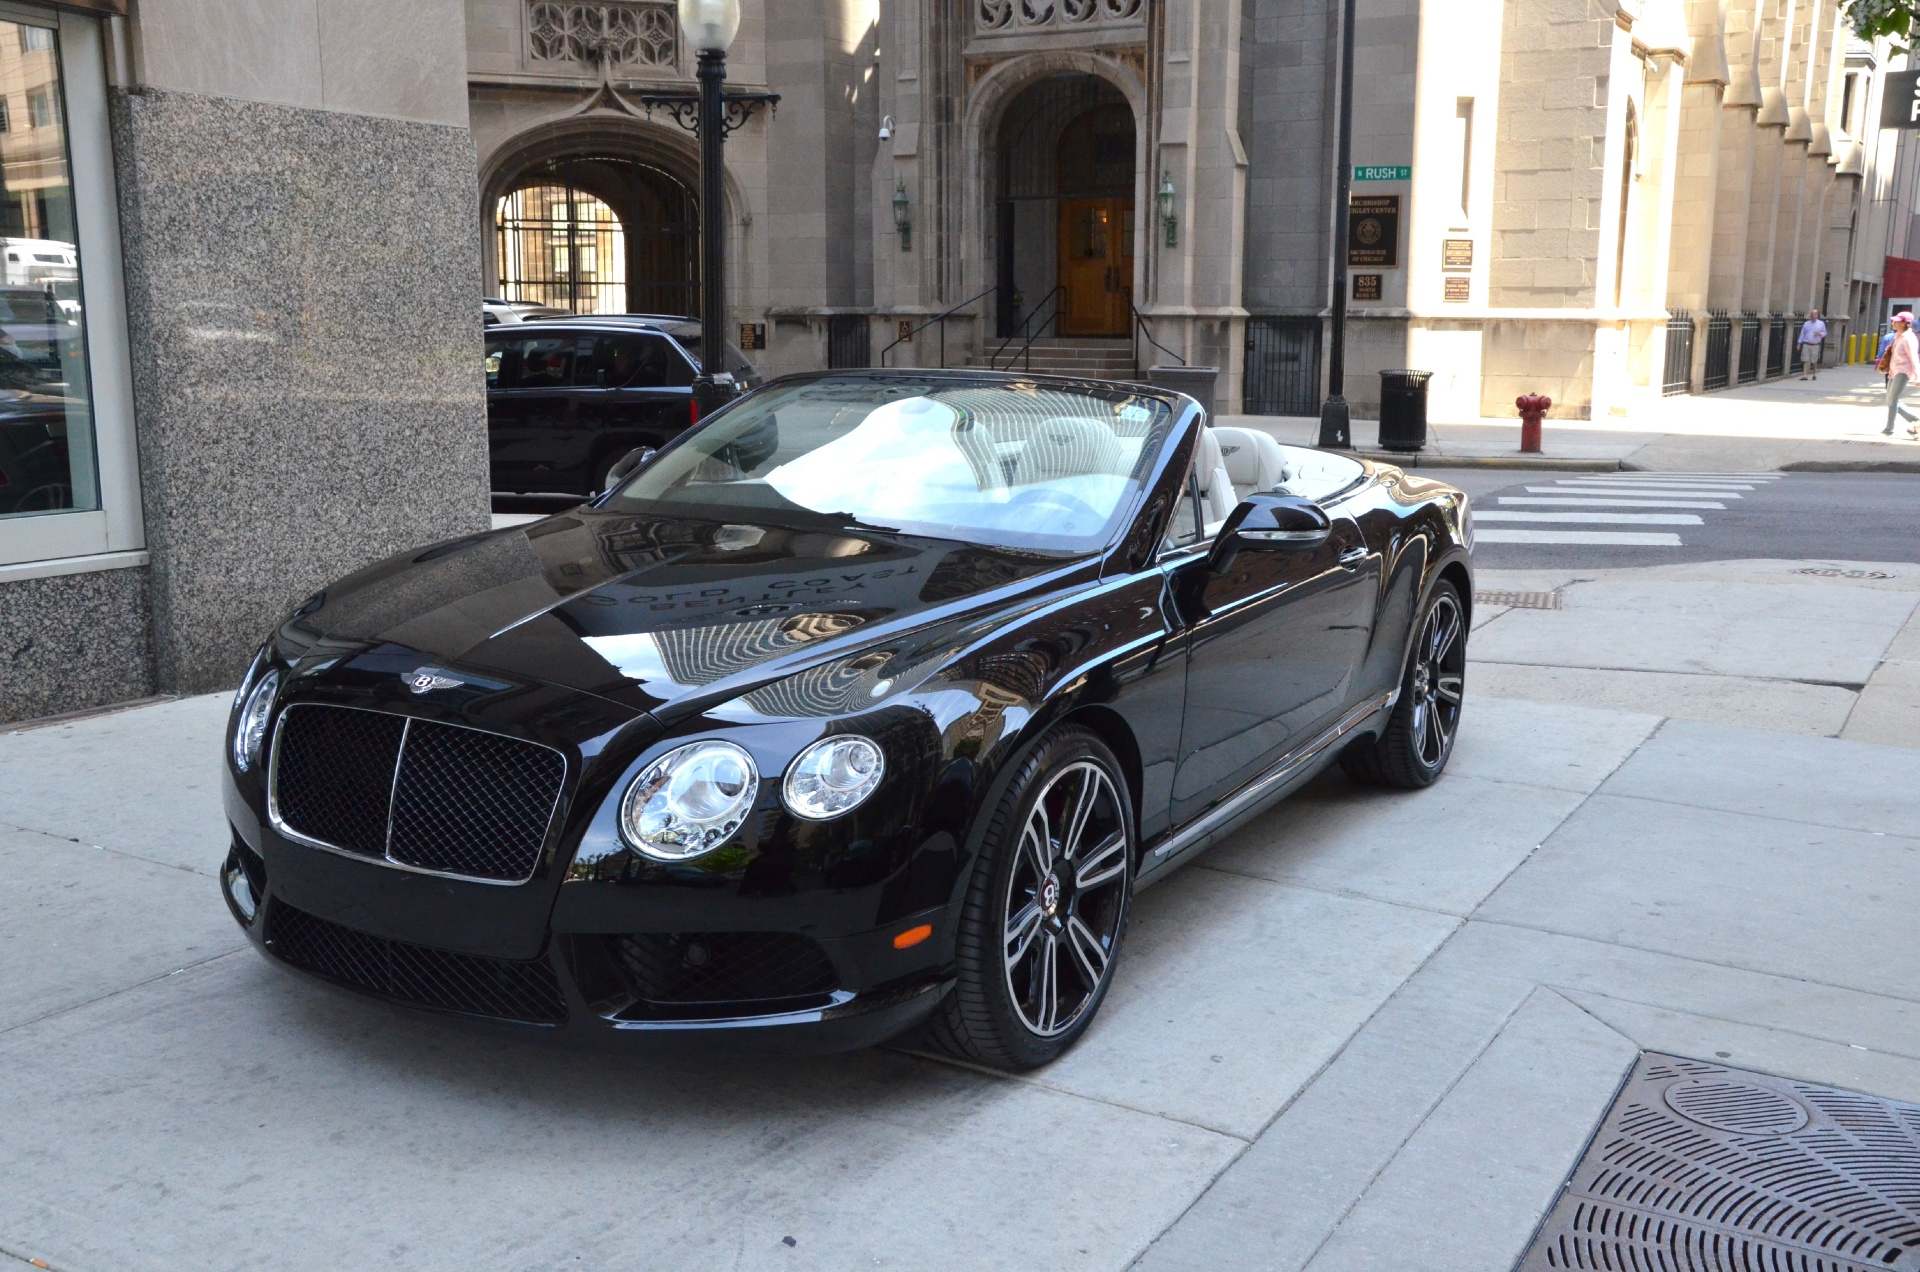 2013 Bentley Continental GTC V8 Stock # GC-ROLAND163 For